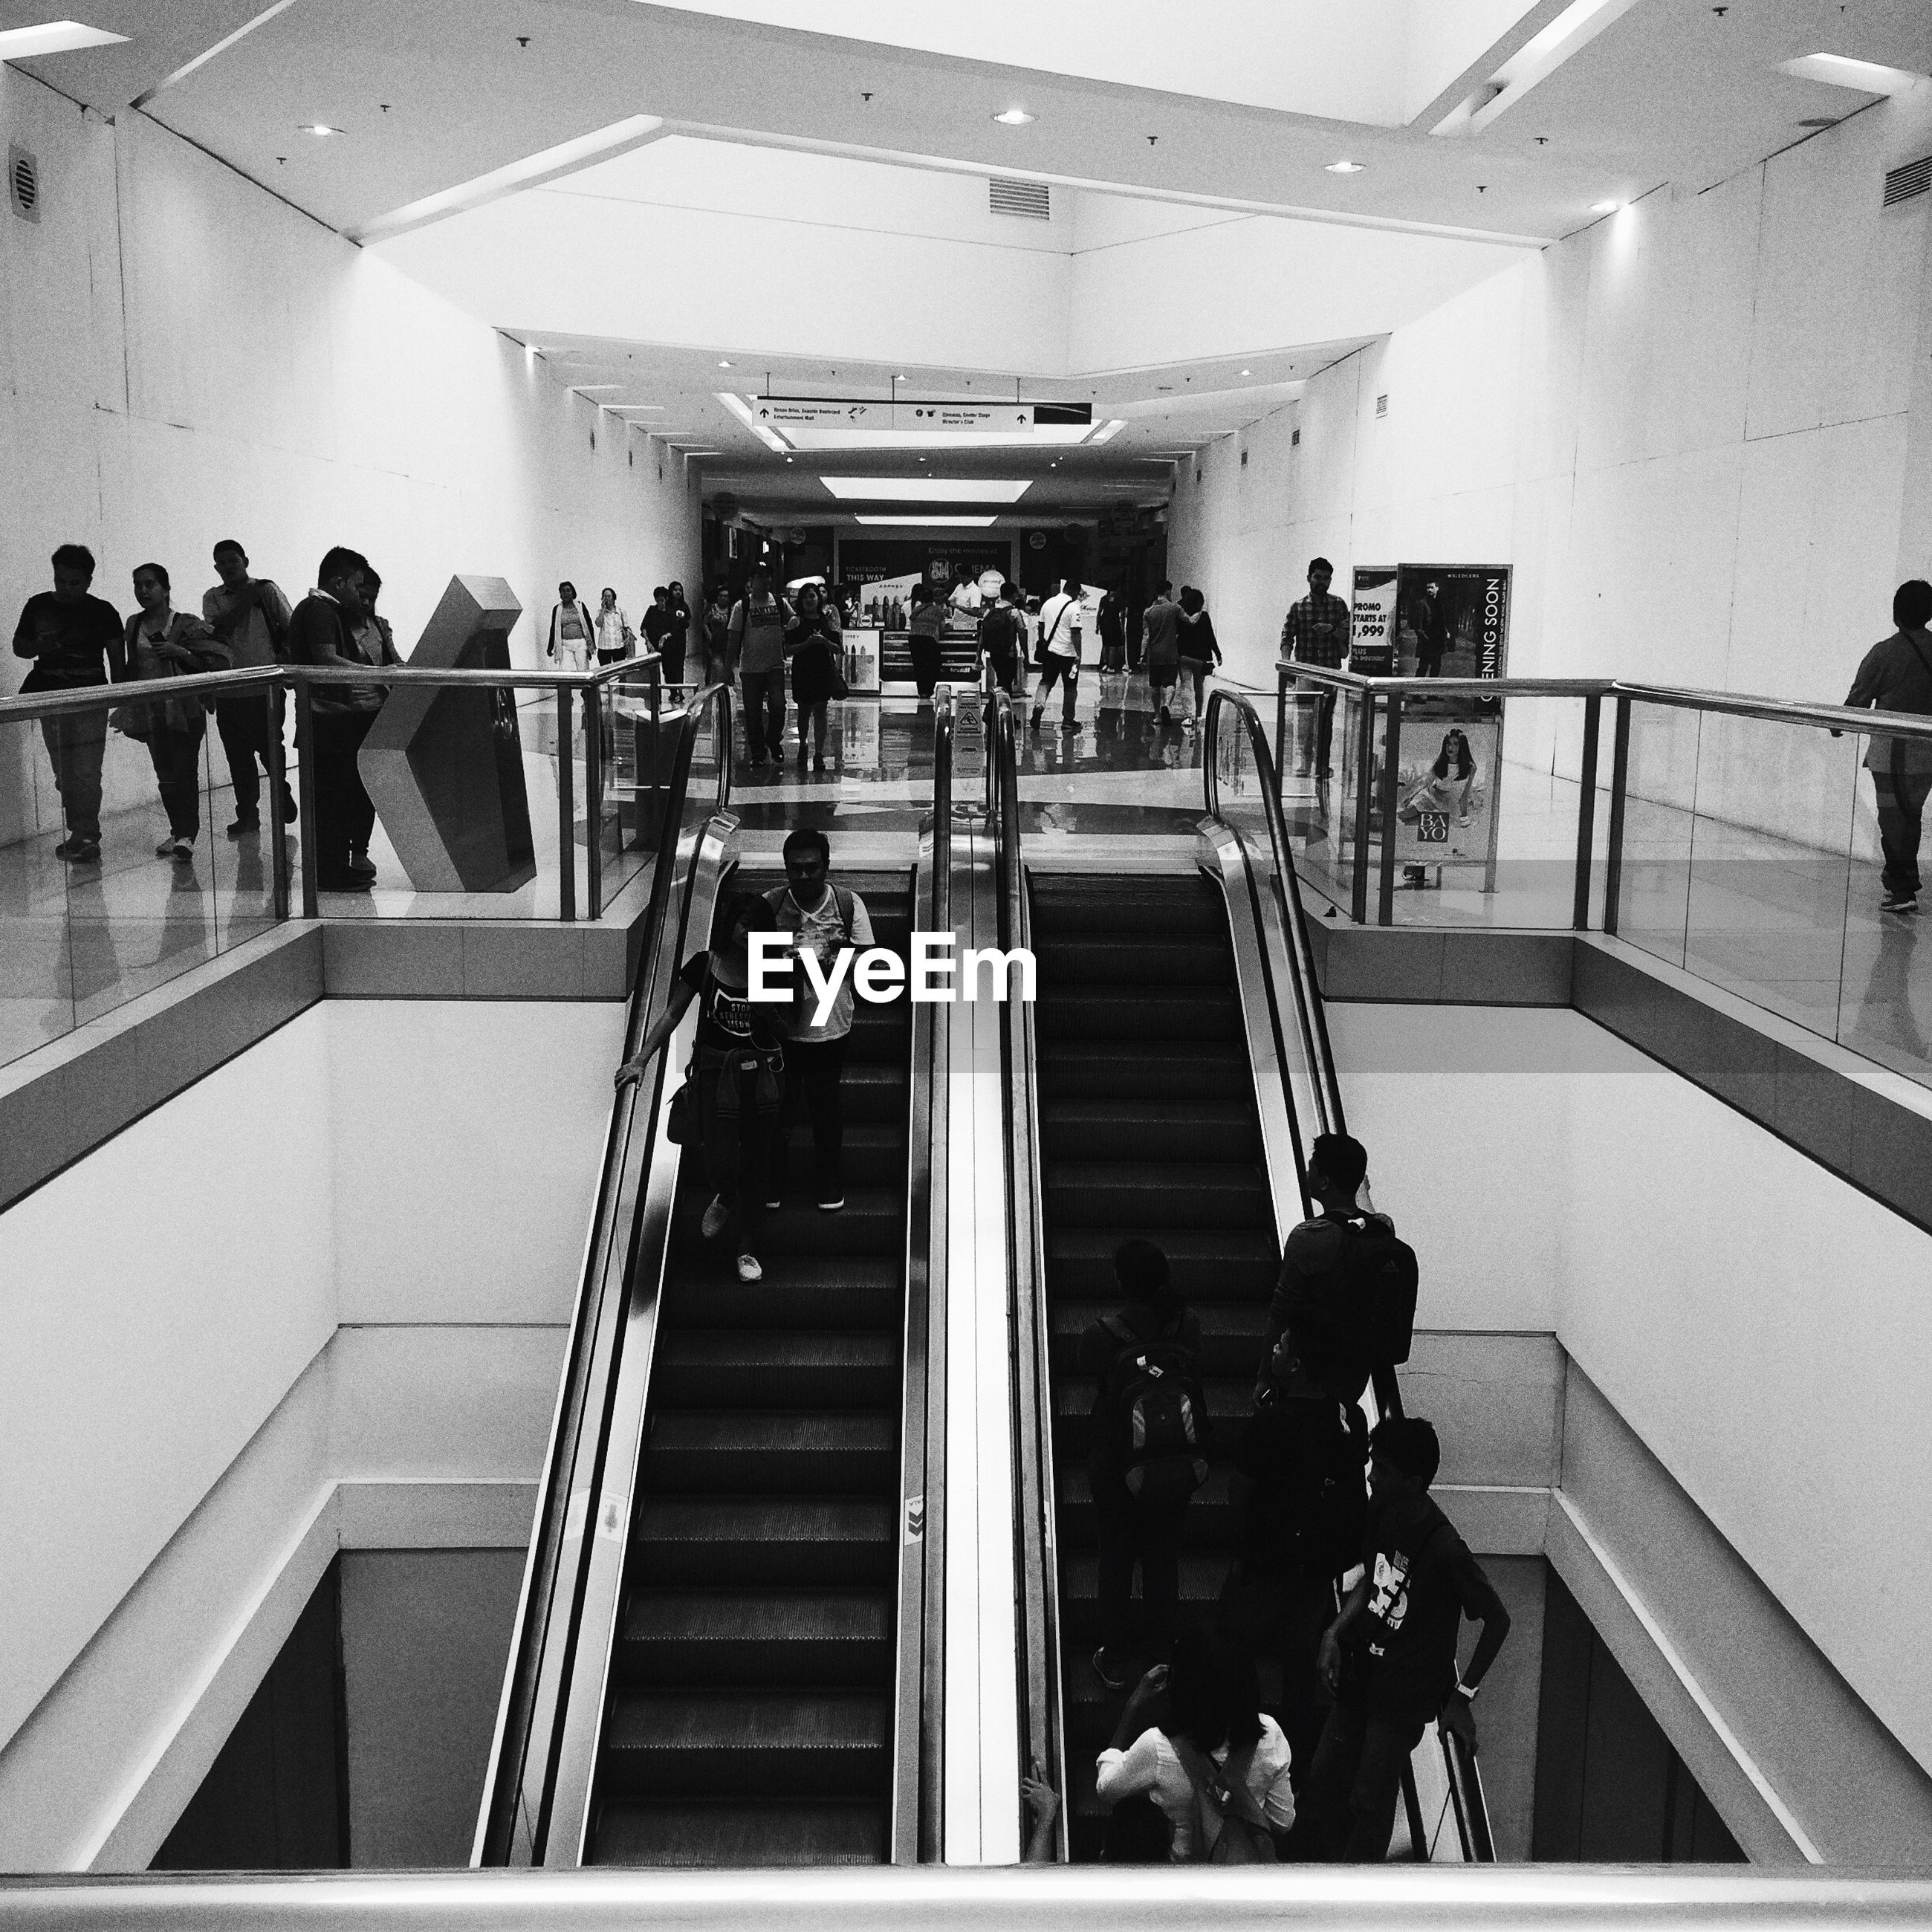 indoors, travel, railing, steps and staircases, large group of people, adults only, men, staircase, only men, illuminated, people, adult, architecture, day